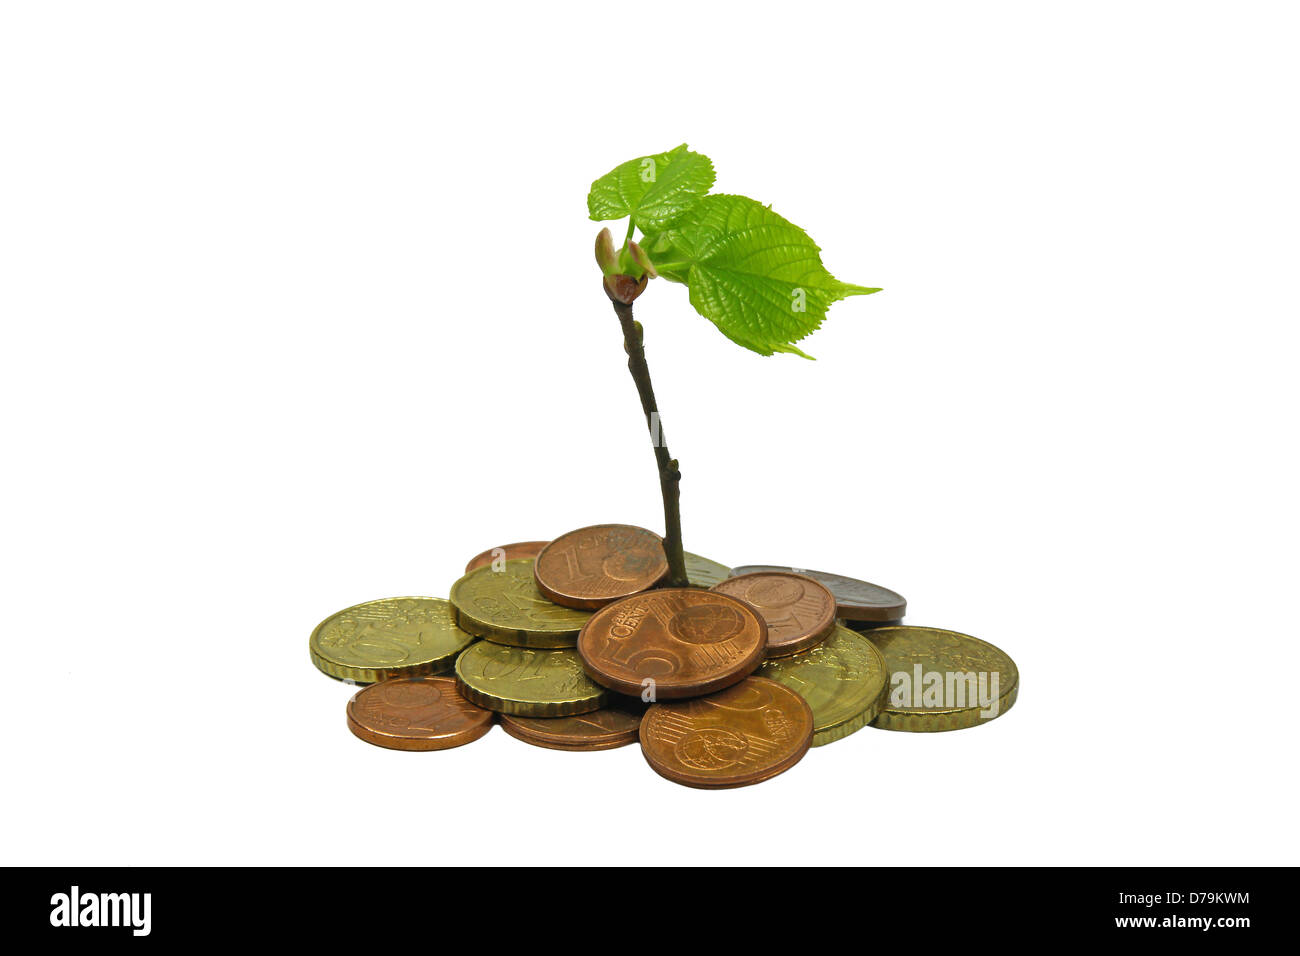 green plant growing from pile of coins - Stock Image